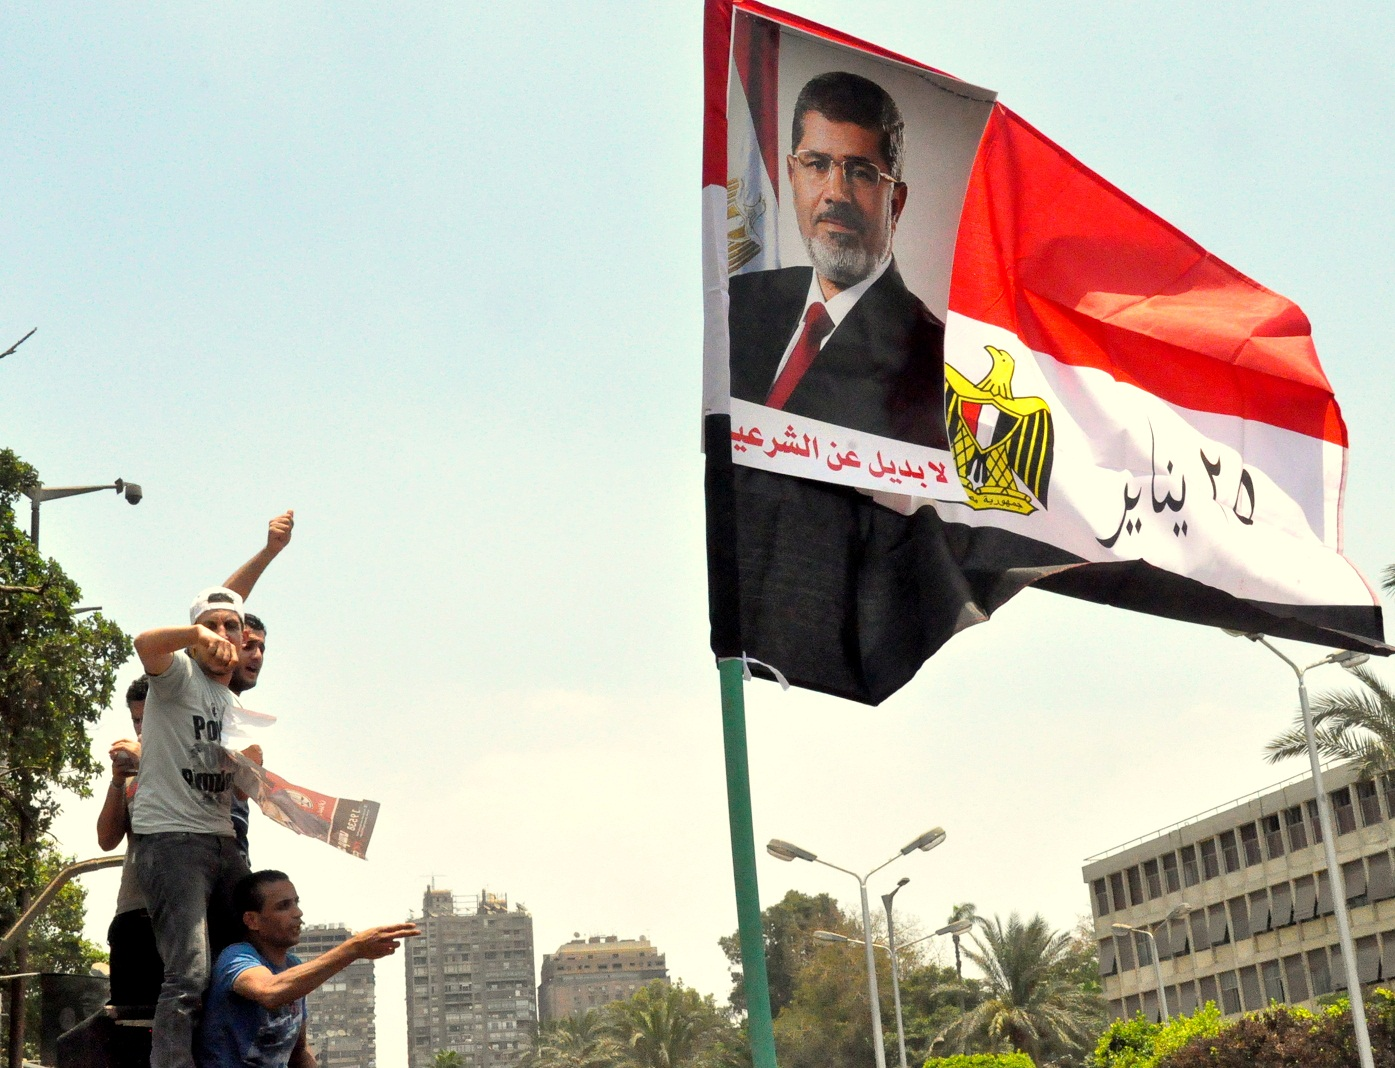 Hundreds of supporters of President Mohamed Morsi gathered in front of Cairo University as nationwide demonstrations continued into Tuesday. (Photo by Aaron T. Rose)